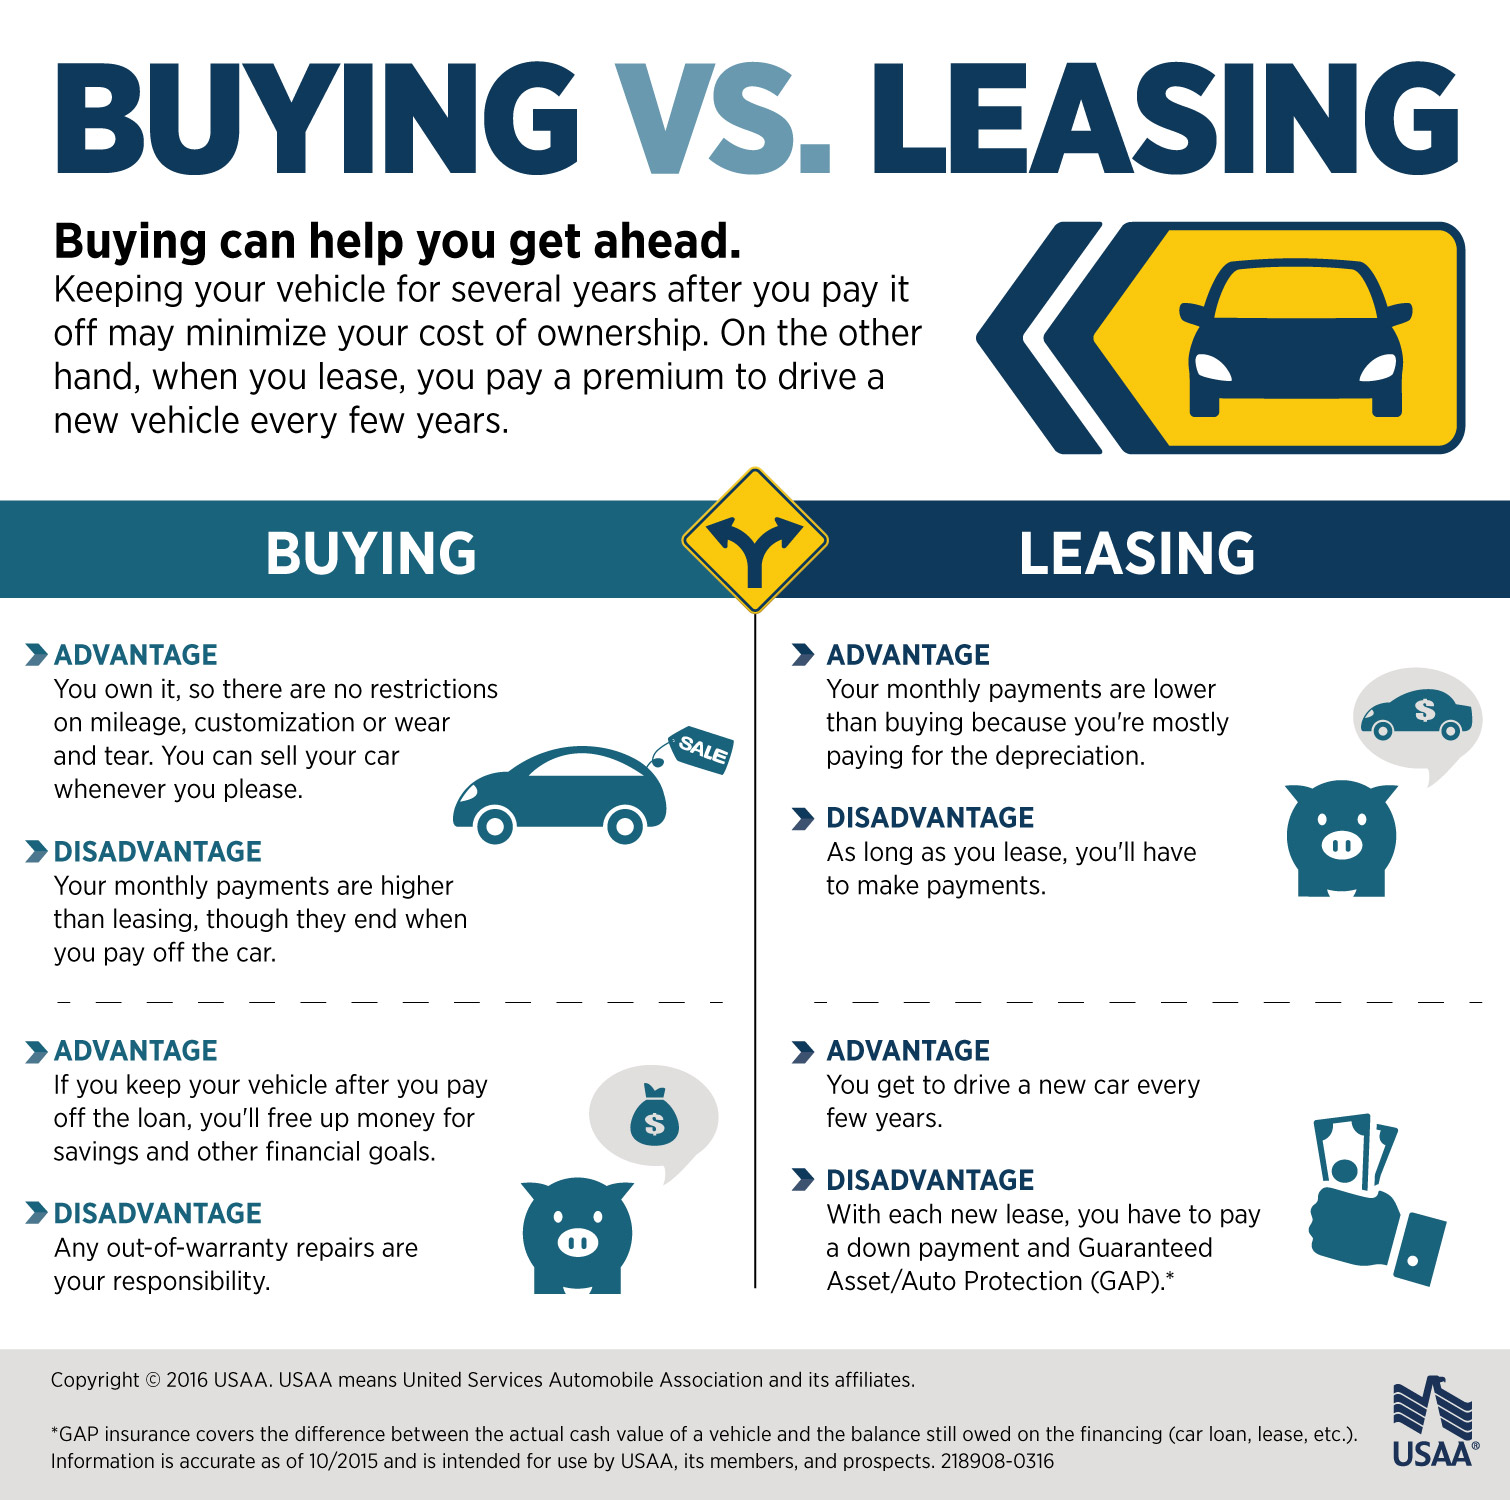 Valley Chevy Buying Vs Leasing A Car Infographic